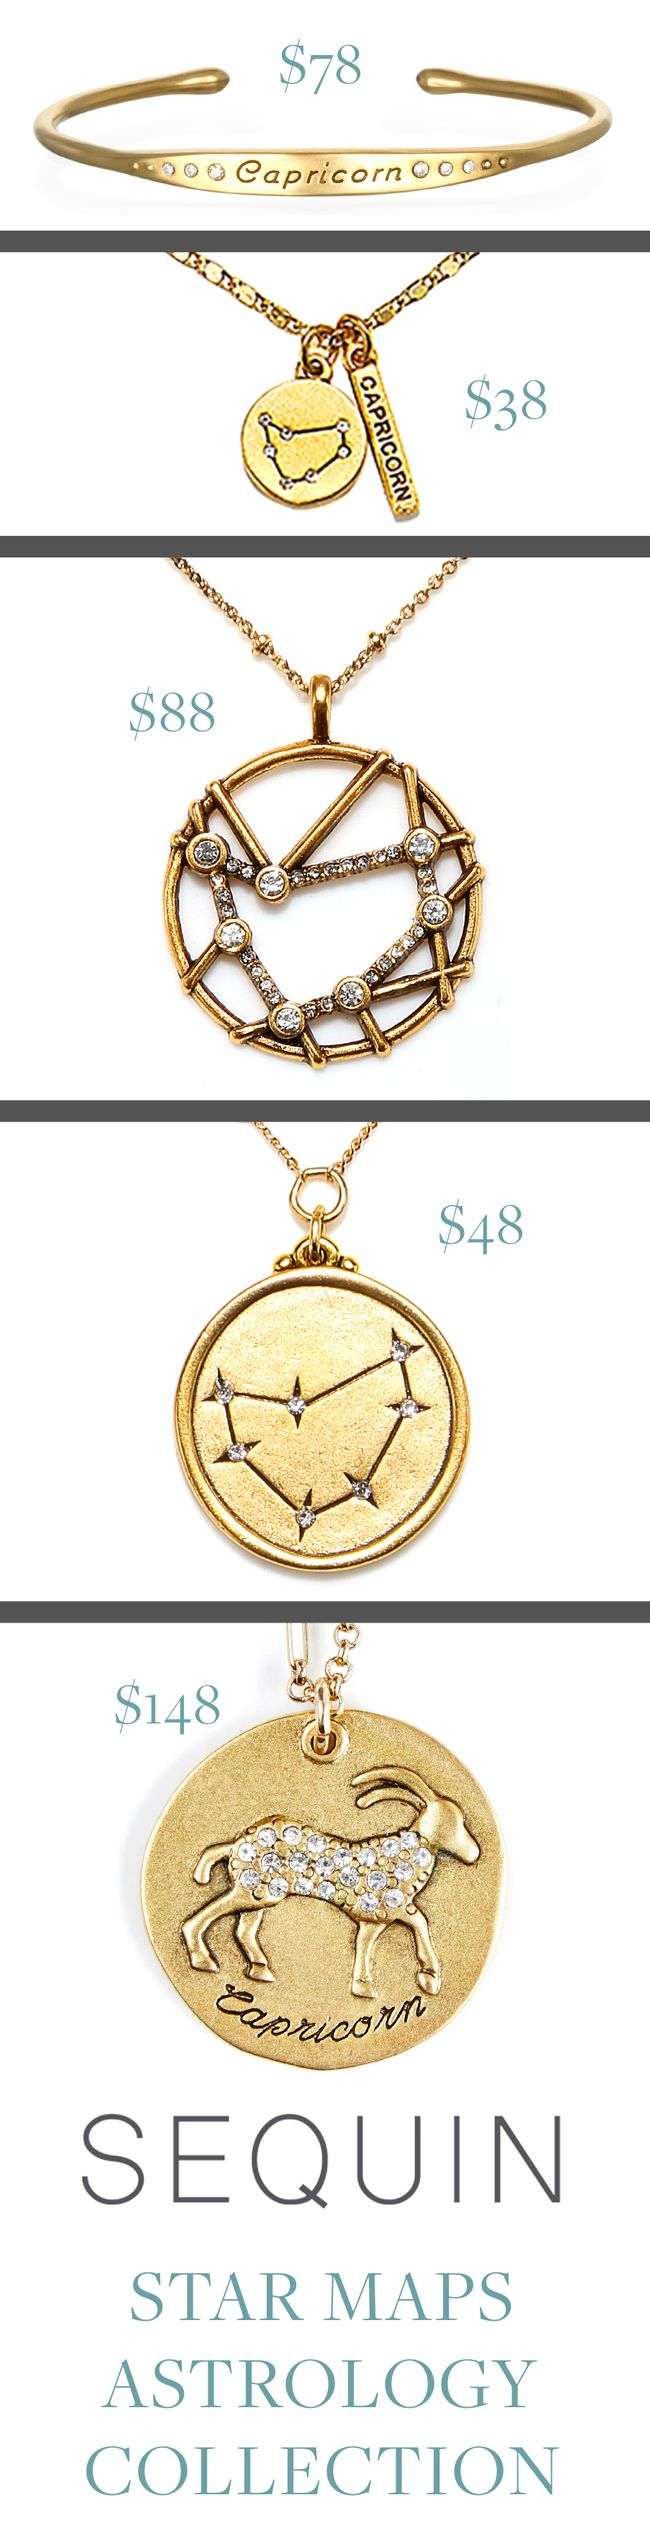 #Capricorn Astrology Jewelry! Sequin's Star Maps Collection illustrates the twelve astrological signs with beautifully detailed interpretations of constellations and zodiac symbols. Each is 22K antique gold- rose-gold or silver-dipped and cast from an original Sequin illustration. Designed & handcrafted in the USA with components from around the world. #CapricornSeason #CapricornZodiac #giftideas #astrologyjewelry